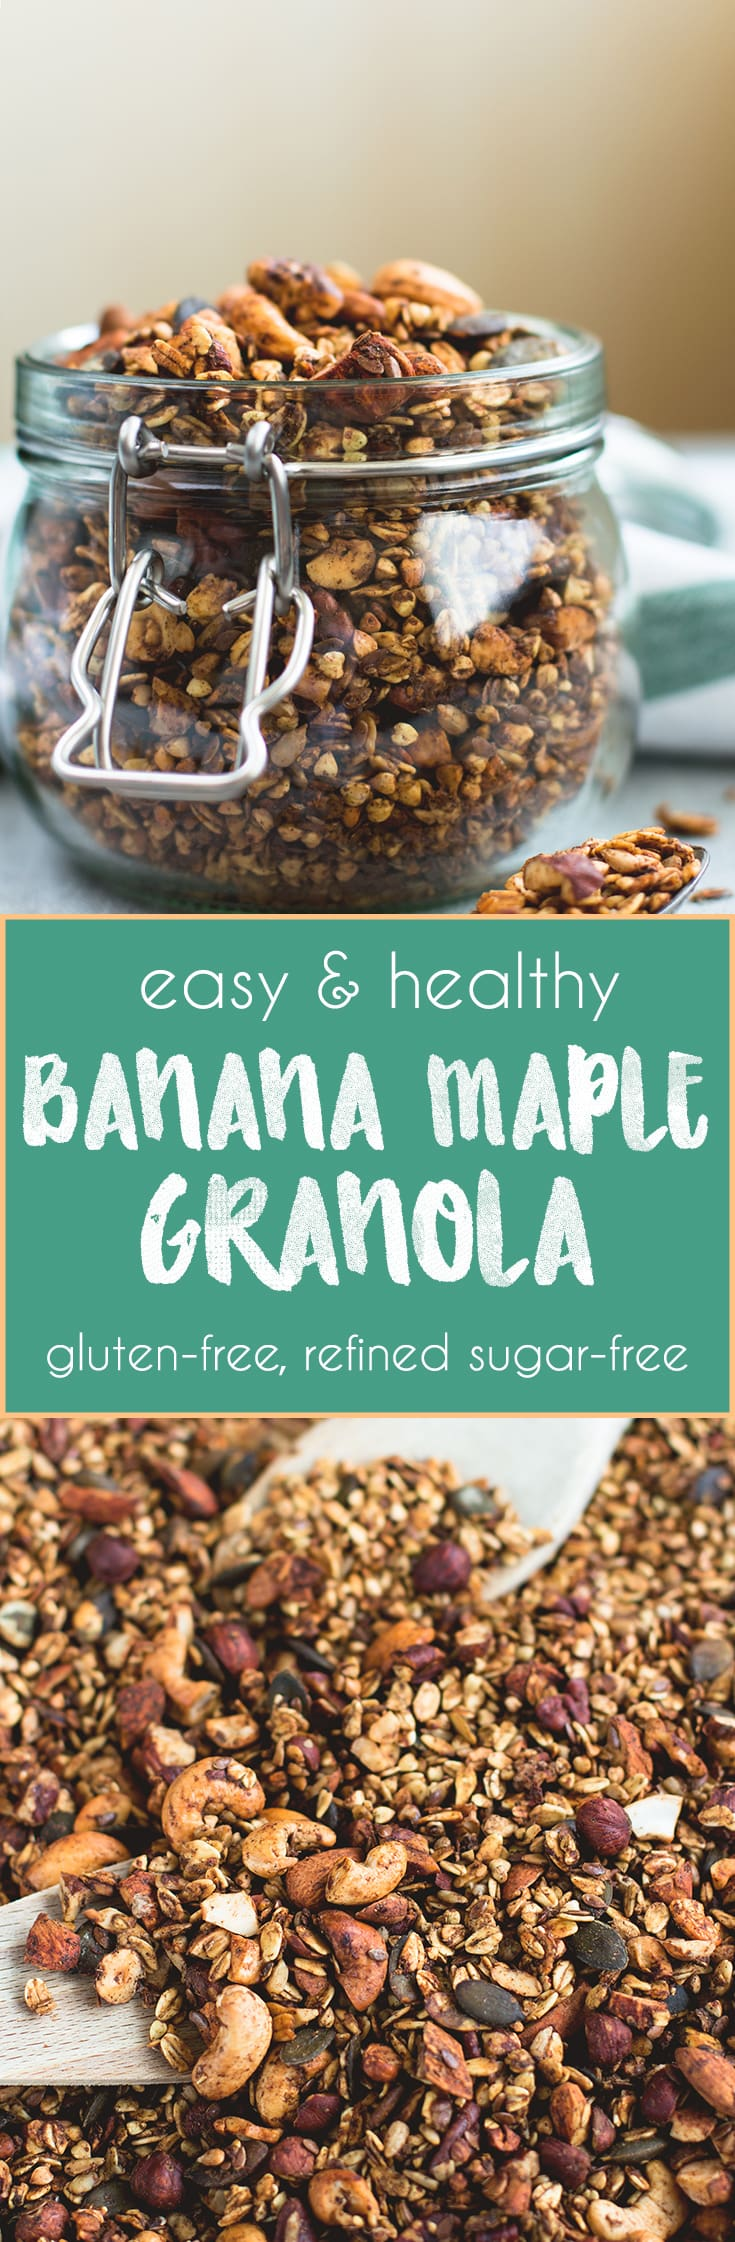 Maple Banana Granola - delicious easy to make granola full of nuts and seeds. Gluten-free and refined-sugar free! I love this granola, it's so simple yet so heavenly. | thehealthfulideas.com